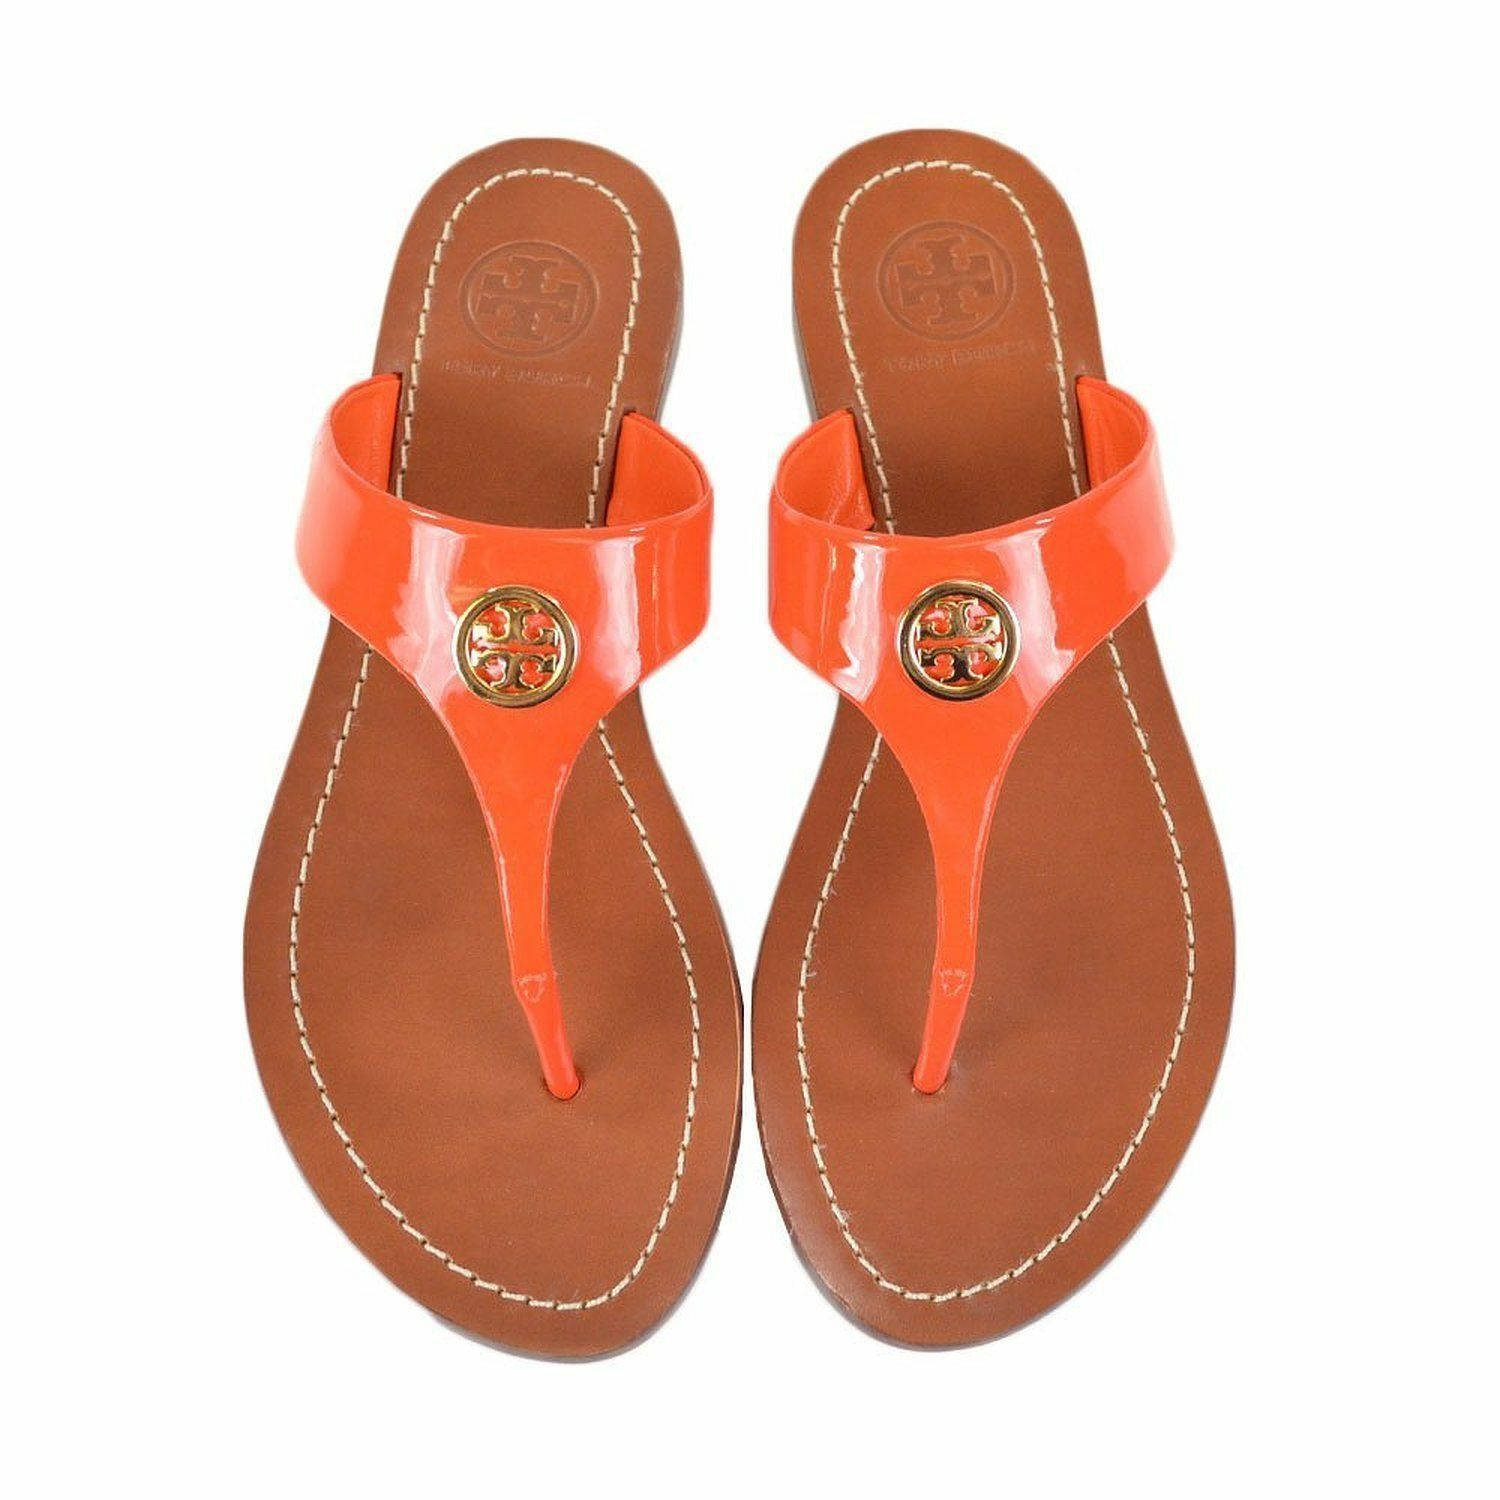 Tory Burch CAMERON Thong Leather Sandals Fire orange 10.5